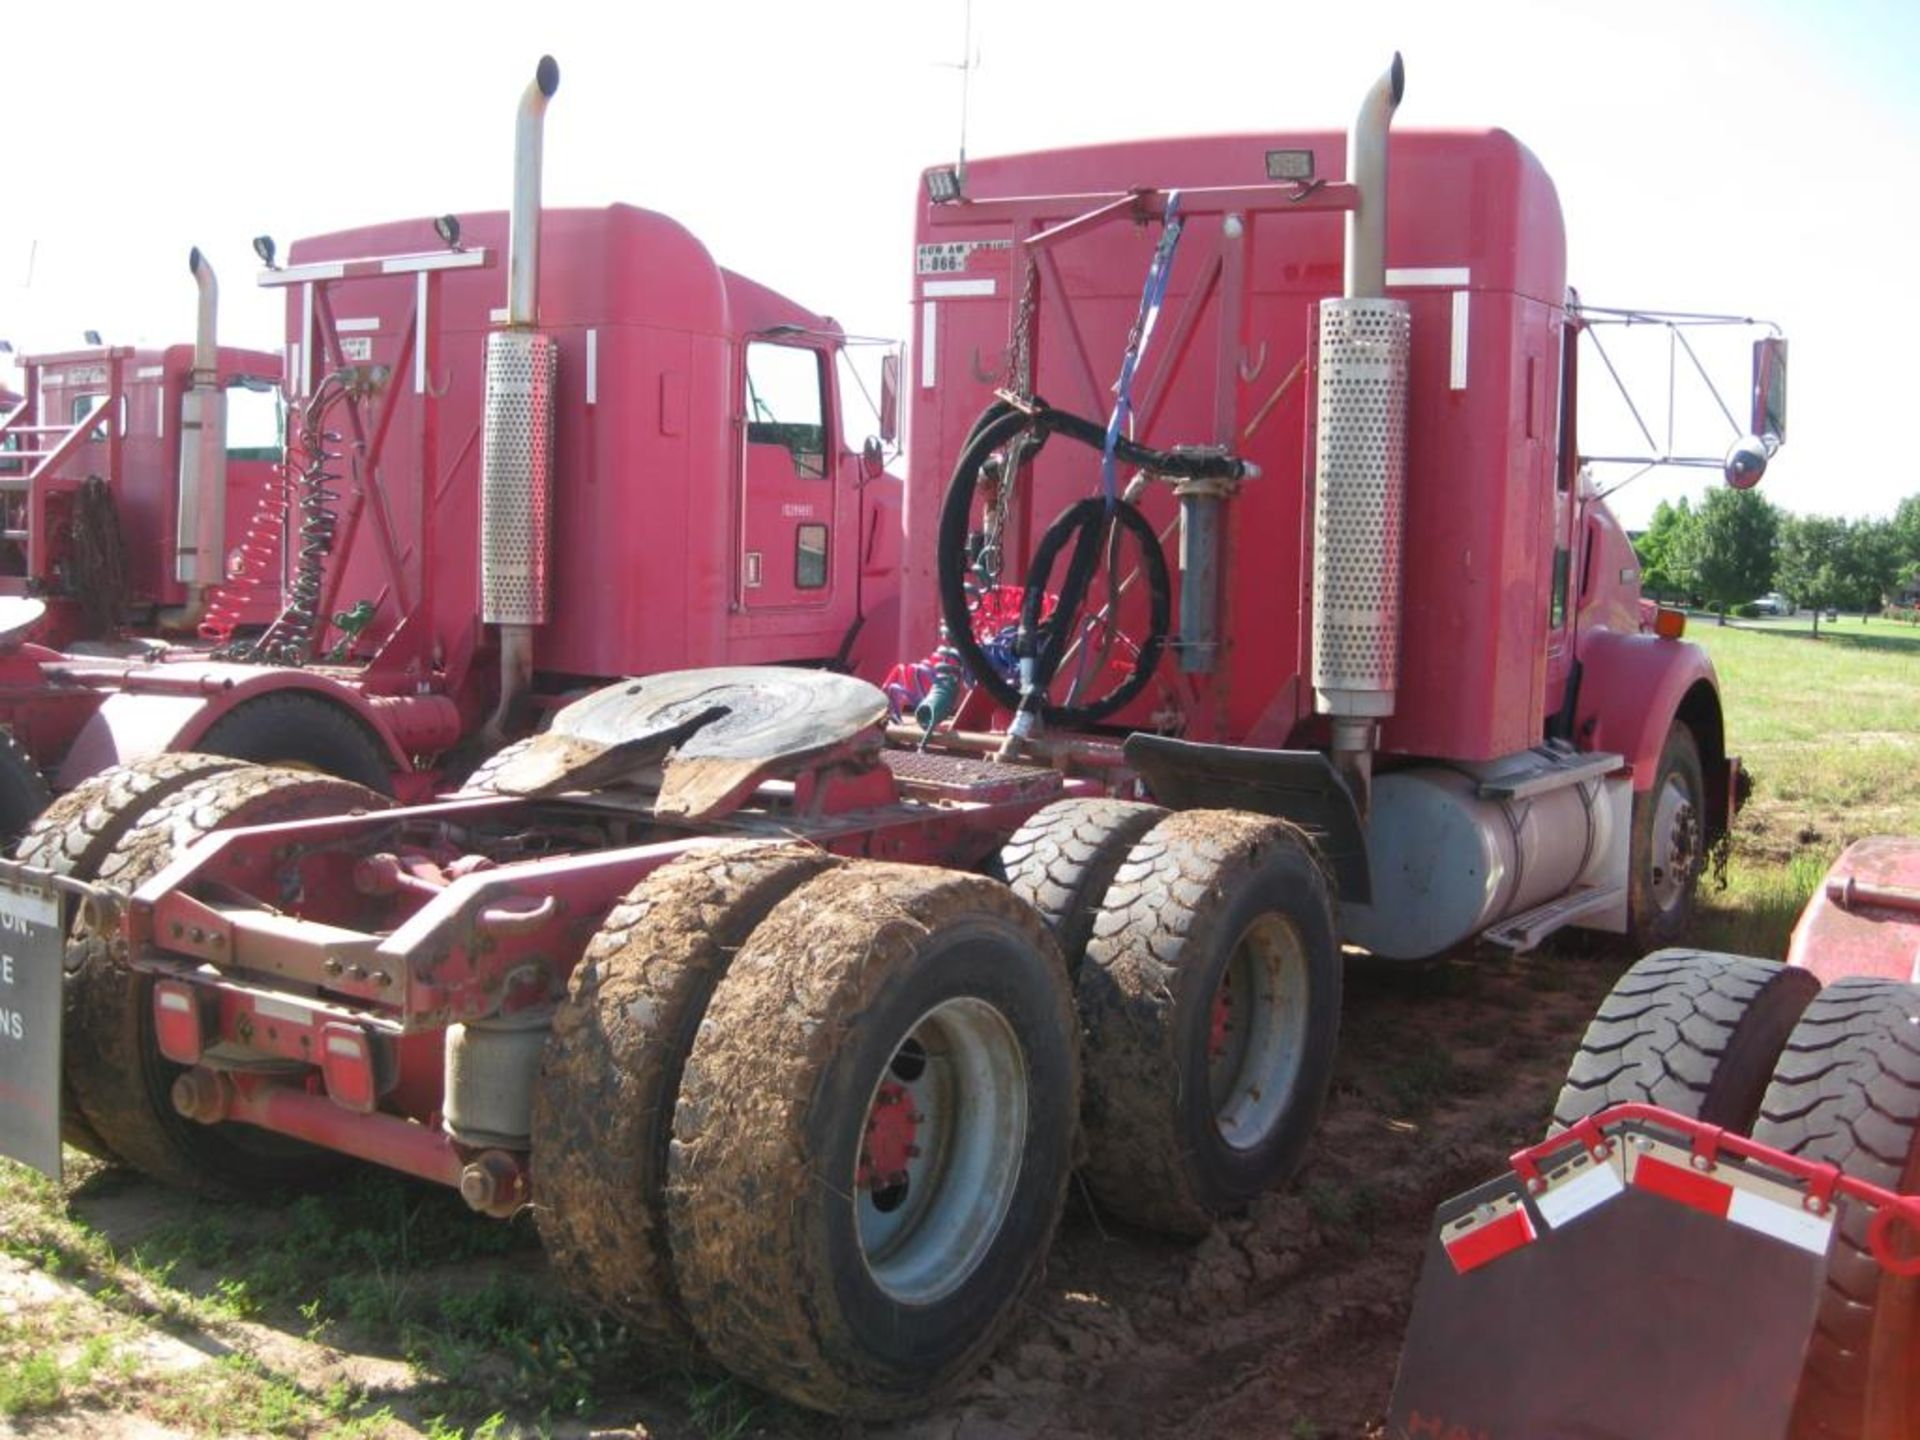 Truck - Image 4 of 24